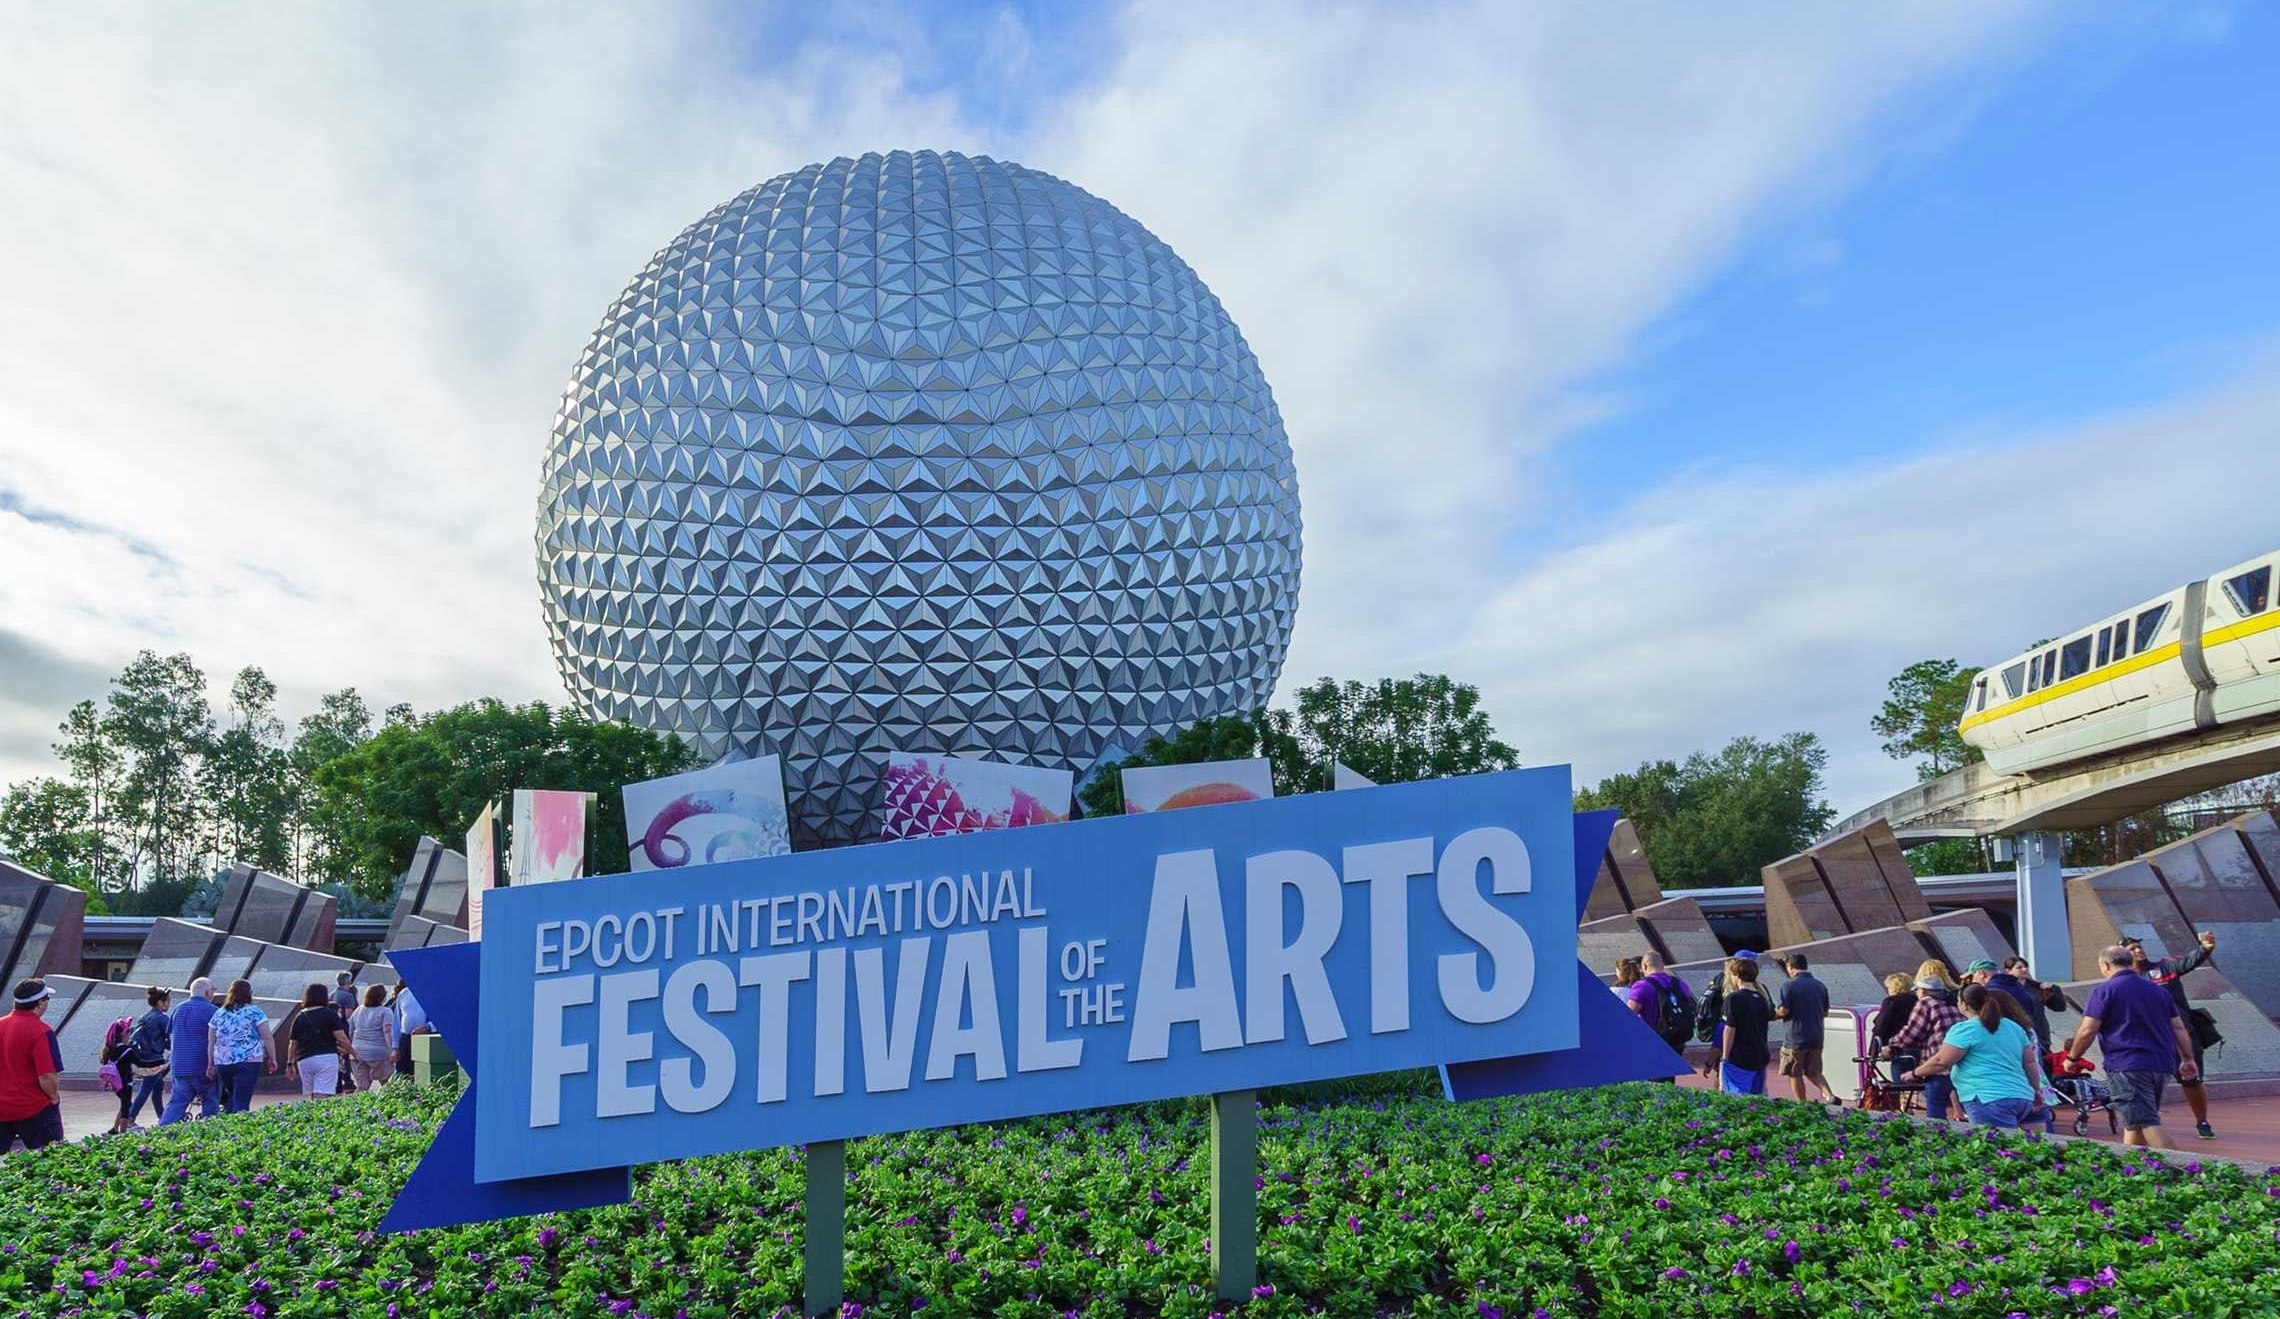 Disney-Point-Epcot-Festival-of-the-Arts-Artes-Disney